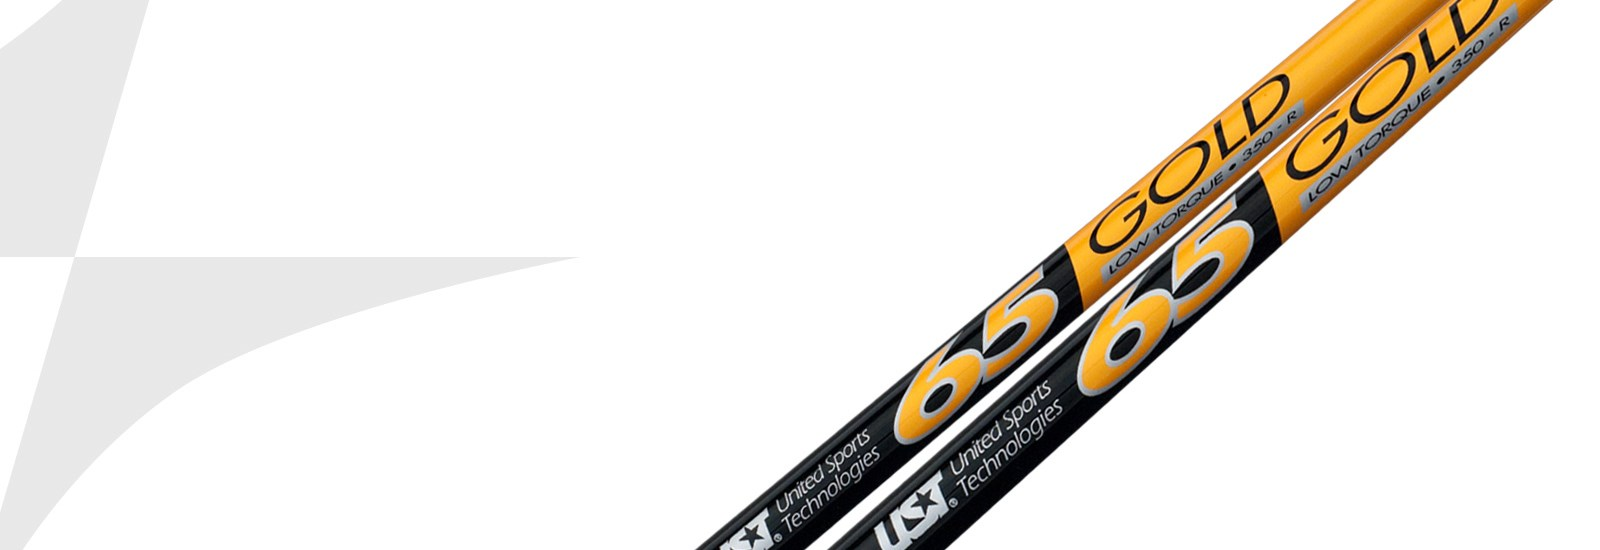 Gold Woods | UST Mamiya